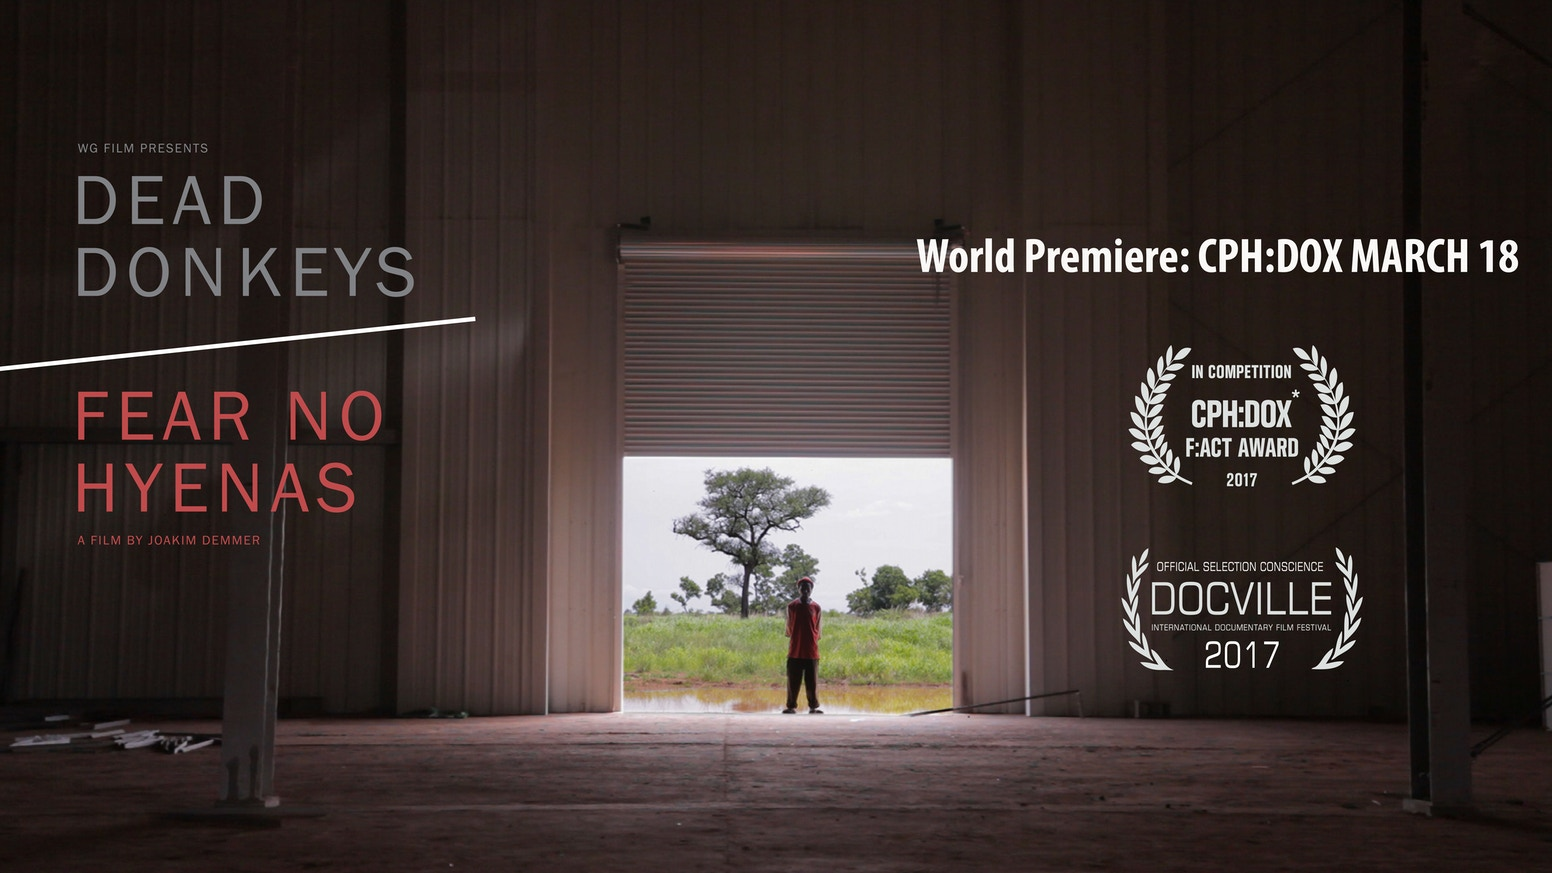 After a 7-year long journey, we have a completed film! Now we want to share the voices of those affected by land grabbing far and wide.